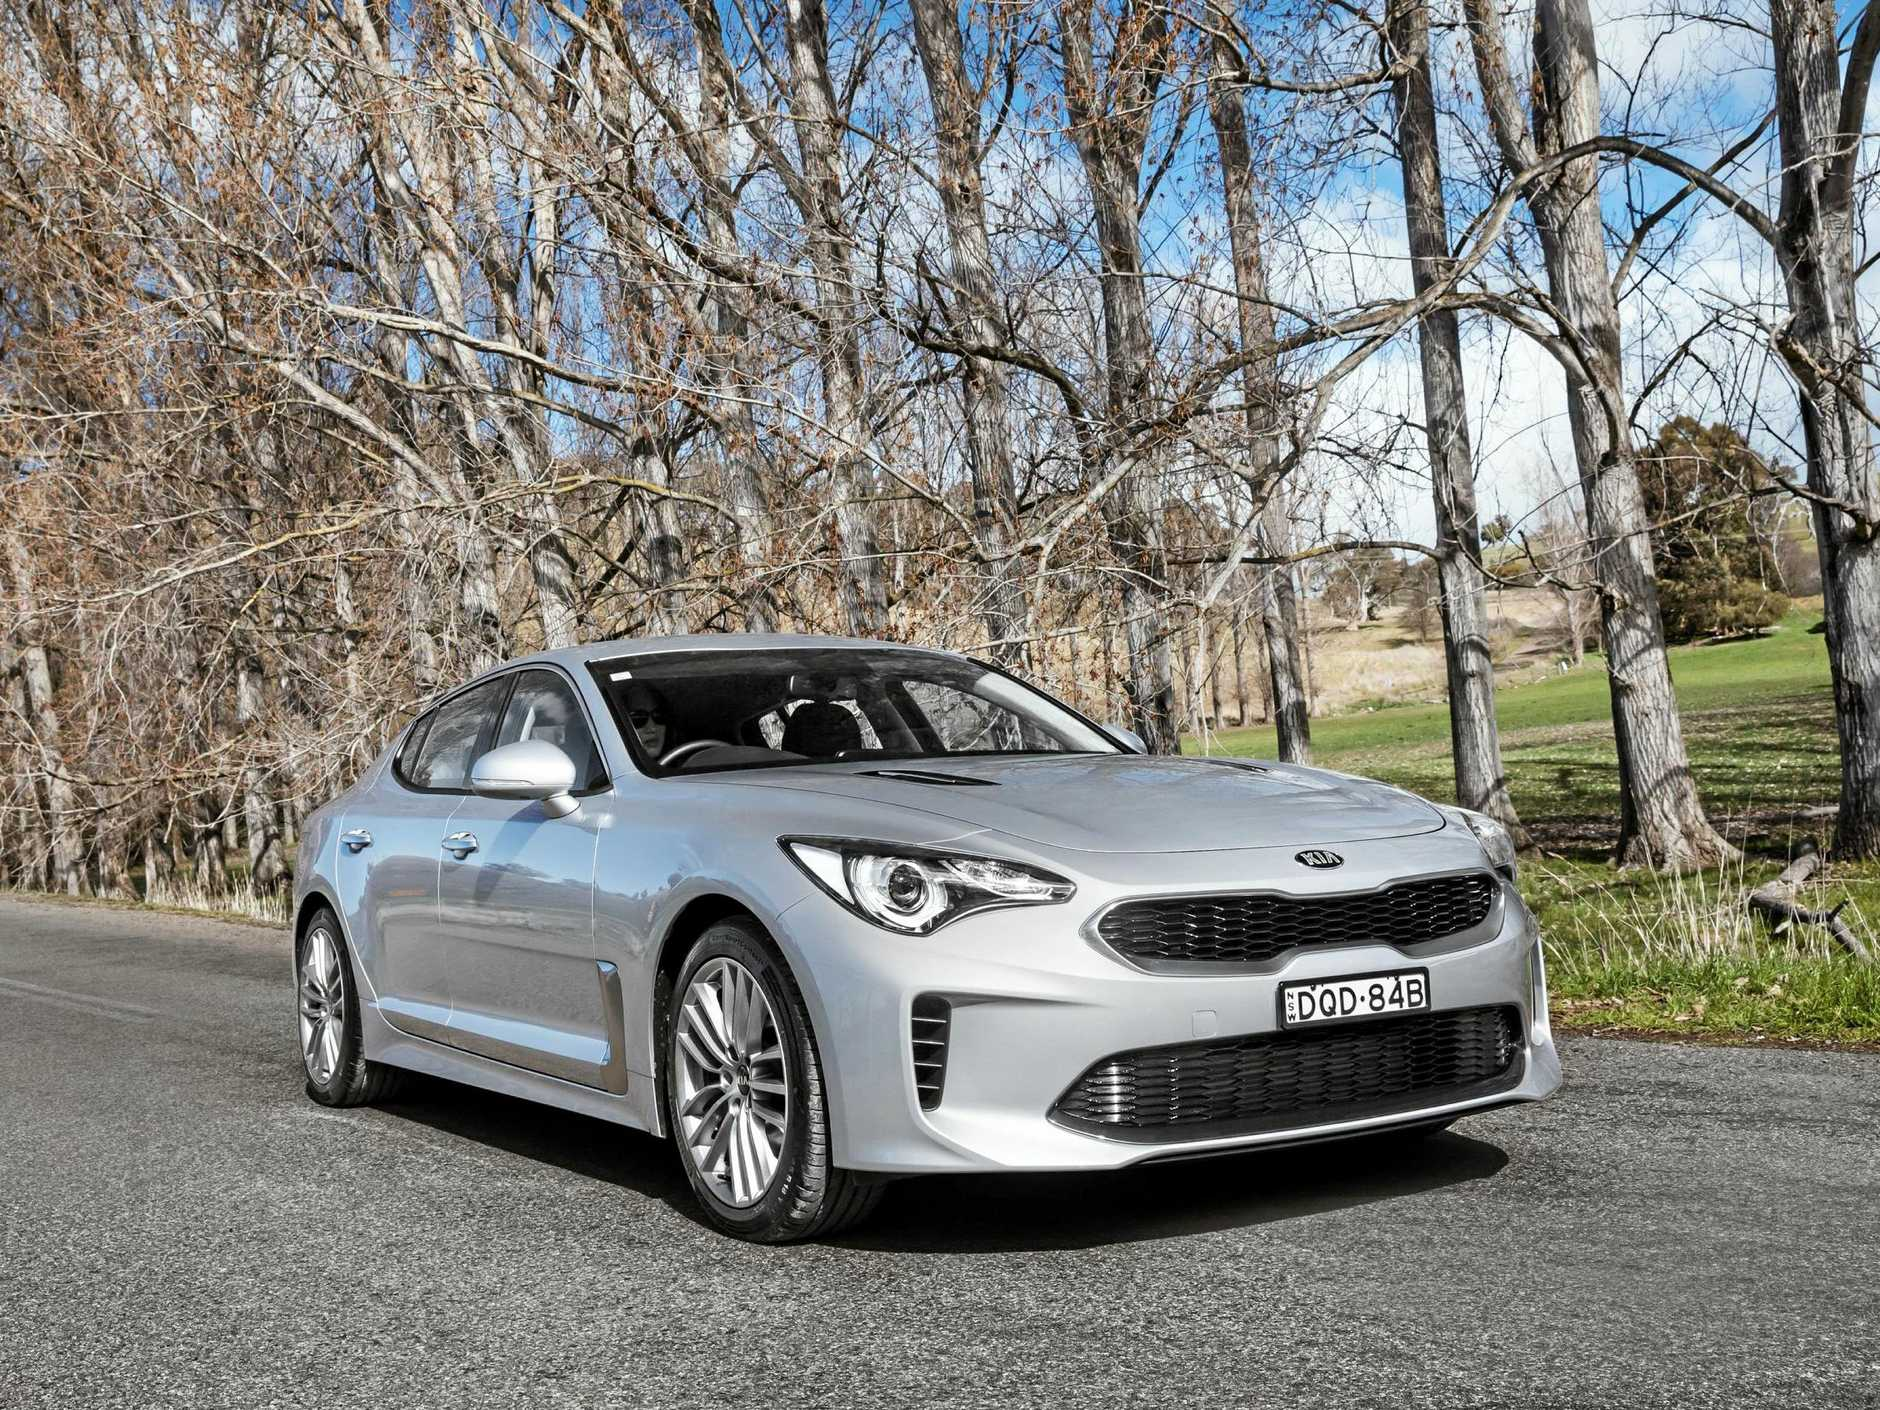 The entry-level Kia Stinger S, which starts from $45,990 with a 2.0-litre turbocharged engine, and $48,990 with the V6.